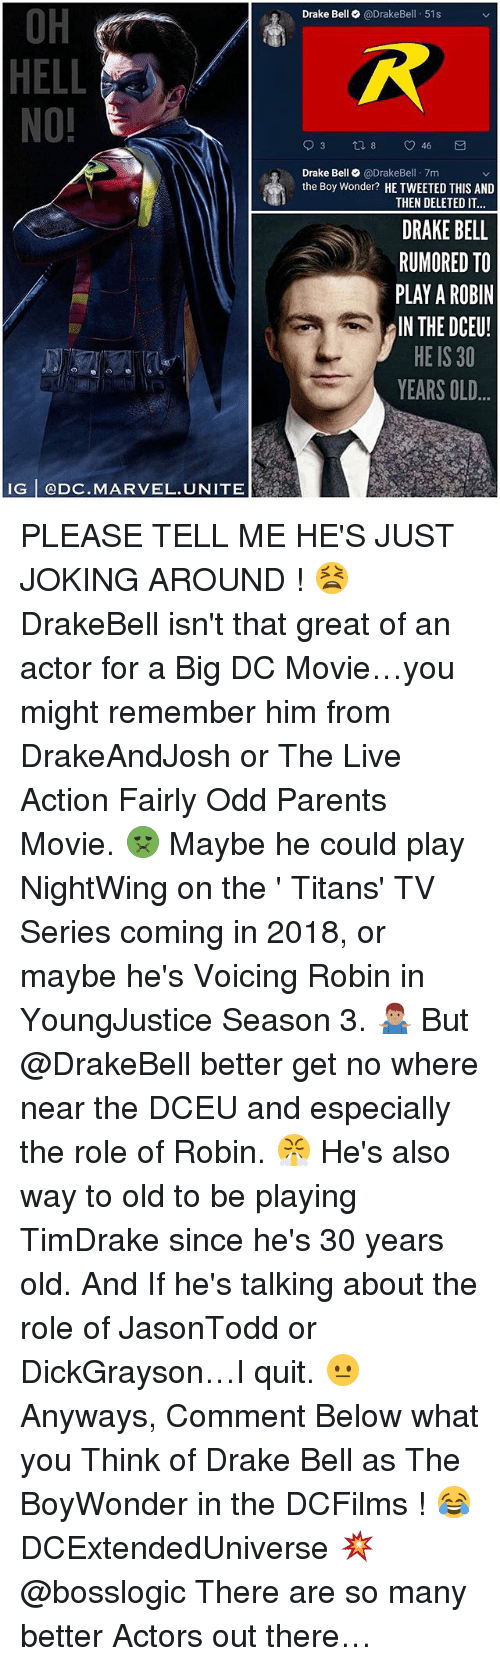 oh hell no: OH  HELL  NO!  Drake Bell @DrakeBell 51s  Drake Bell@DrakeBel 7m  the Boy Wonder? HE TWEETED THIS AND  THEN DELETED IT  DRAKE BELL  RUMORED TO  PLAY A ROBIN  IN THE DCEU!  HE IS 30  YEARS OLD  IG @DC.MARVEL.UNITE PLEASE TELL ME HE'S JUST JOKING AROUND ! 😫 DrakeBell isn't that great of an actor for a Big DC Movie…you might remember him from DrakeAndJosh or The Live Action Fairly Odd Parents Movie. 🤢 Maybe he could play NightWing on the ' Titans' TV Series coming in 2018, or maybe he's Voicing Robin in YoungJustice Season 3. 🤷🏽♂️ But @DrakeBell better get no where near the DCEU and especially the role of Robin. 😤 He's also way to old to be playing TimDrake since he's 30 years old. And If he's talking about the role of JasonTodd or DickGrayson…I quit. 😐 Anyways, Comment Below what you Think of Drake Bell as The BoyWonder in the DCFilms ! 😂 DCExtendedUniverse 💥 @bosslogic There are so many better Actors out there…